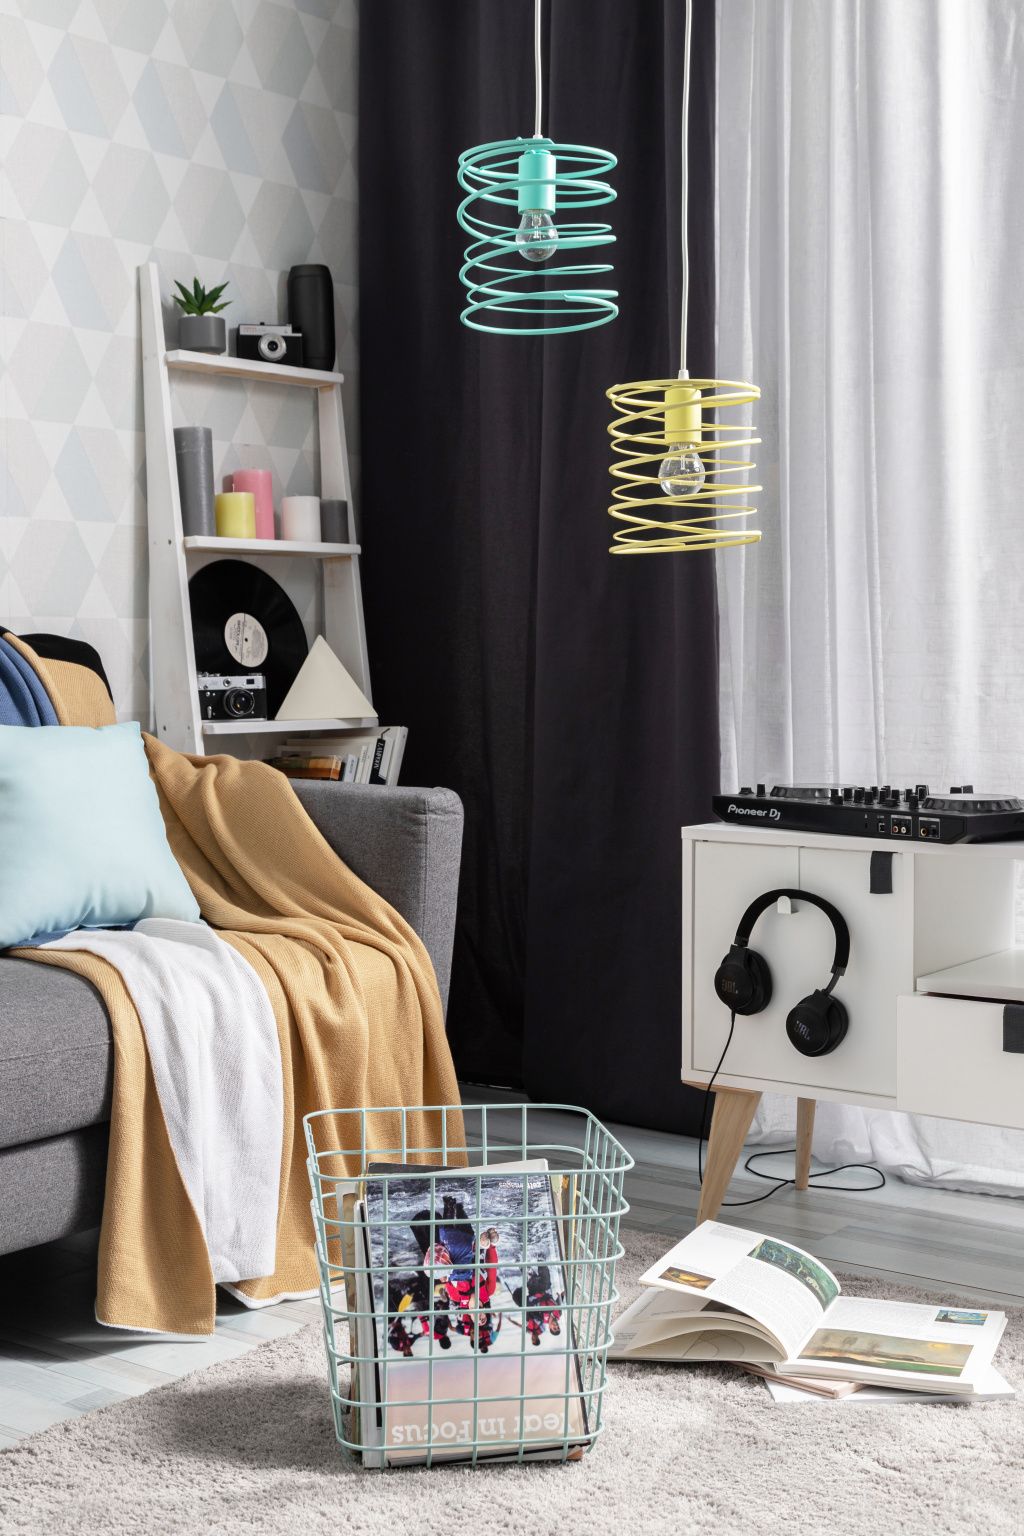 Spaceo Kub metal basket, Largo jacquard blanket, Rainbow turquoise pillow, Shaggi Trend gray carpet.  Products of the company